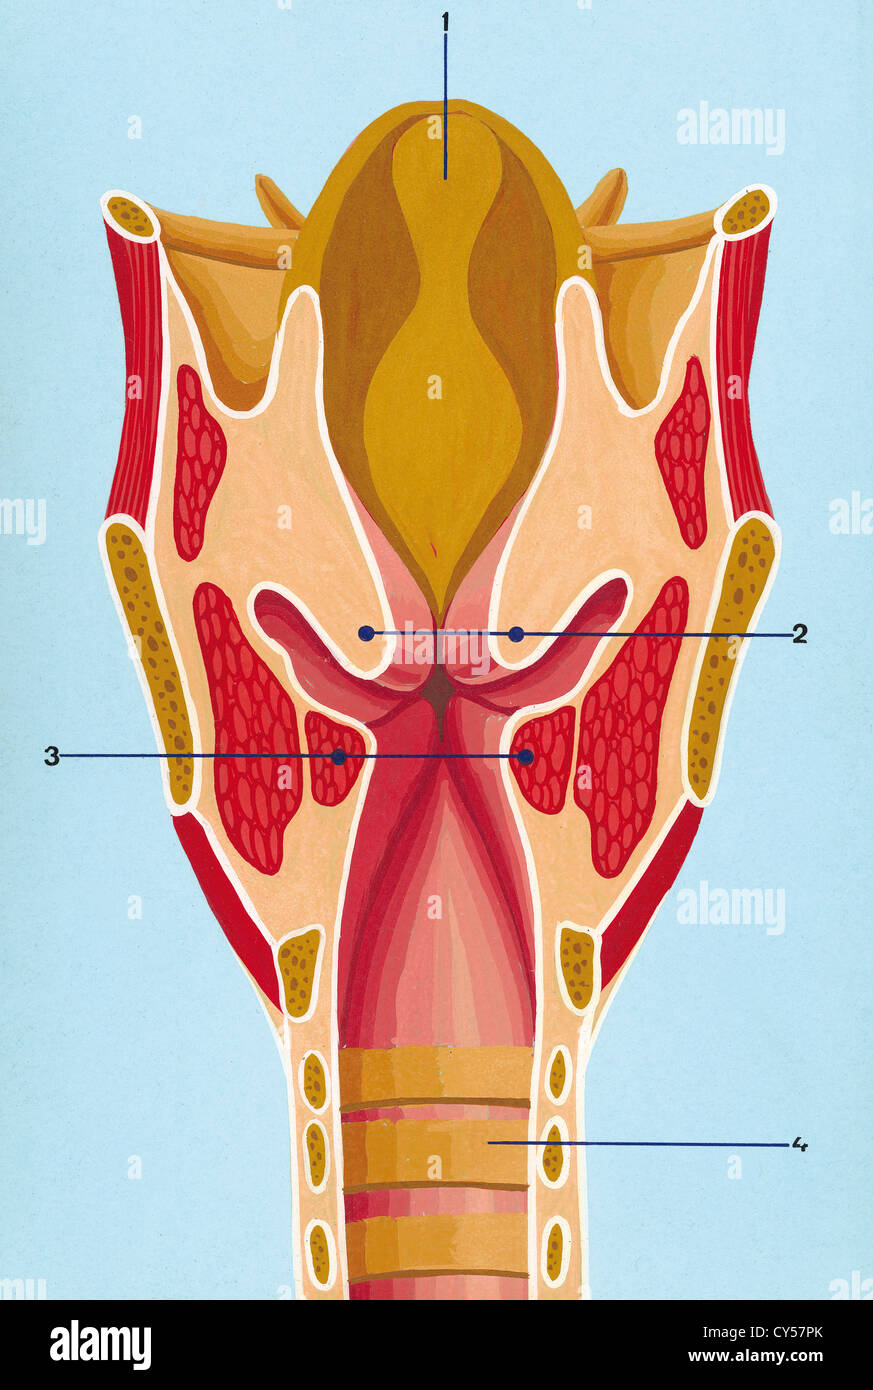 Drawingcolor Respiratory System Schematic Drawing Of The Front Section Of The